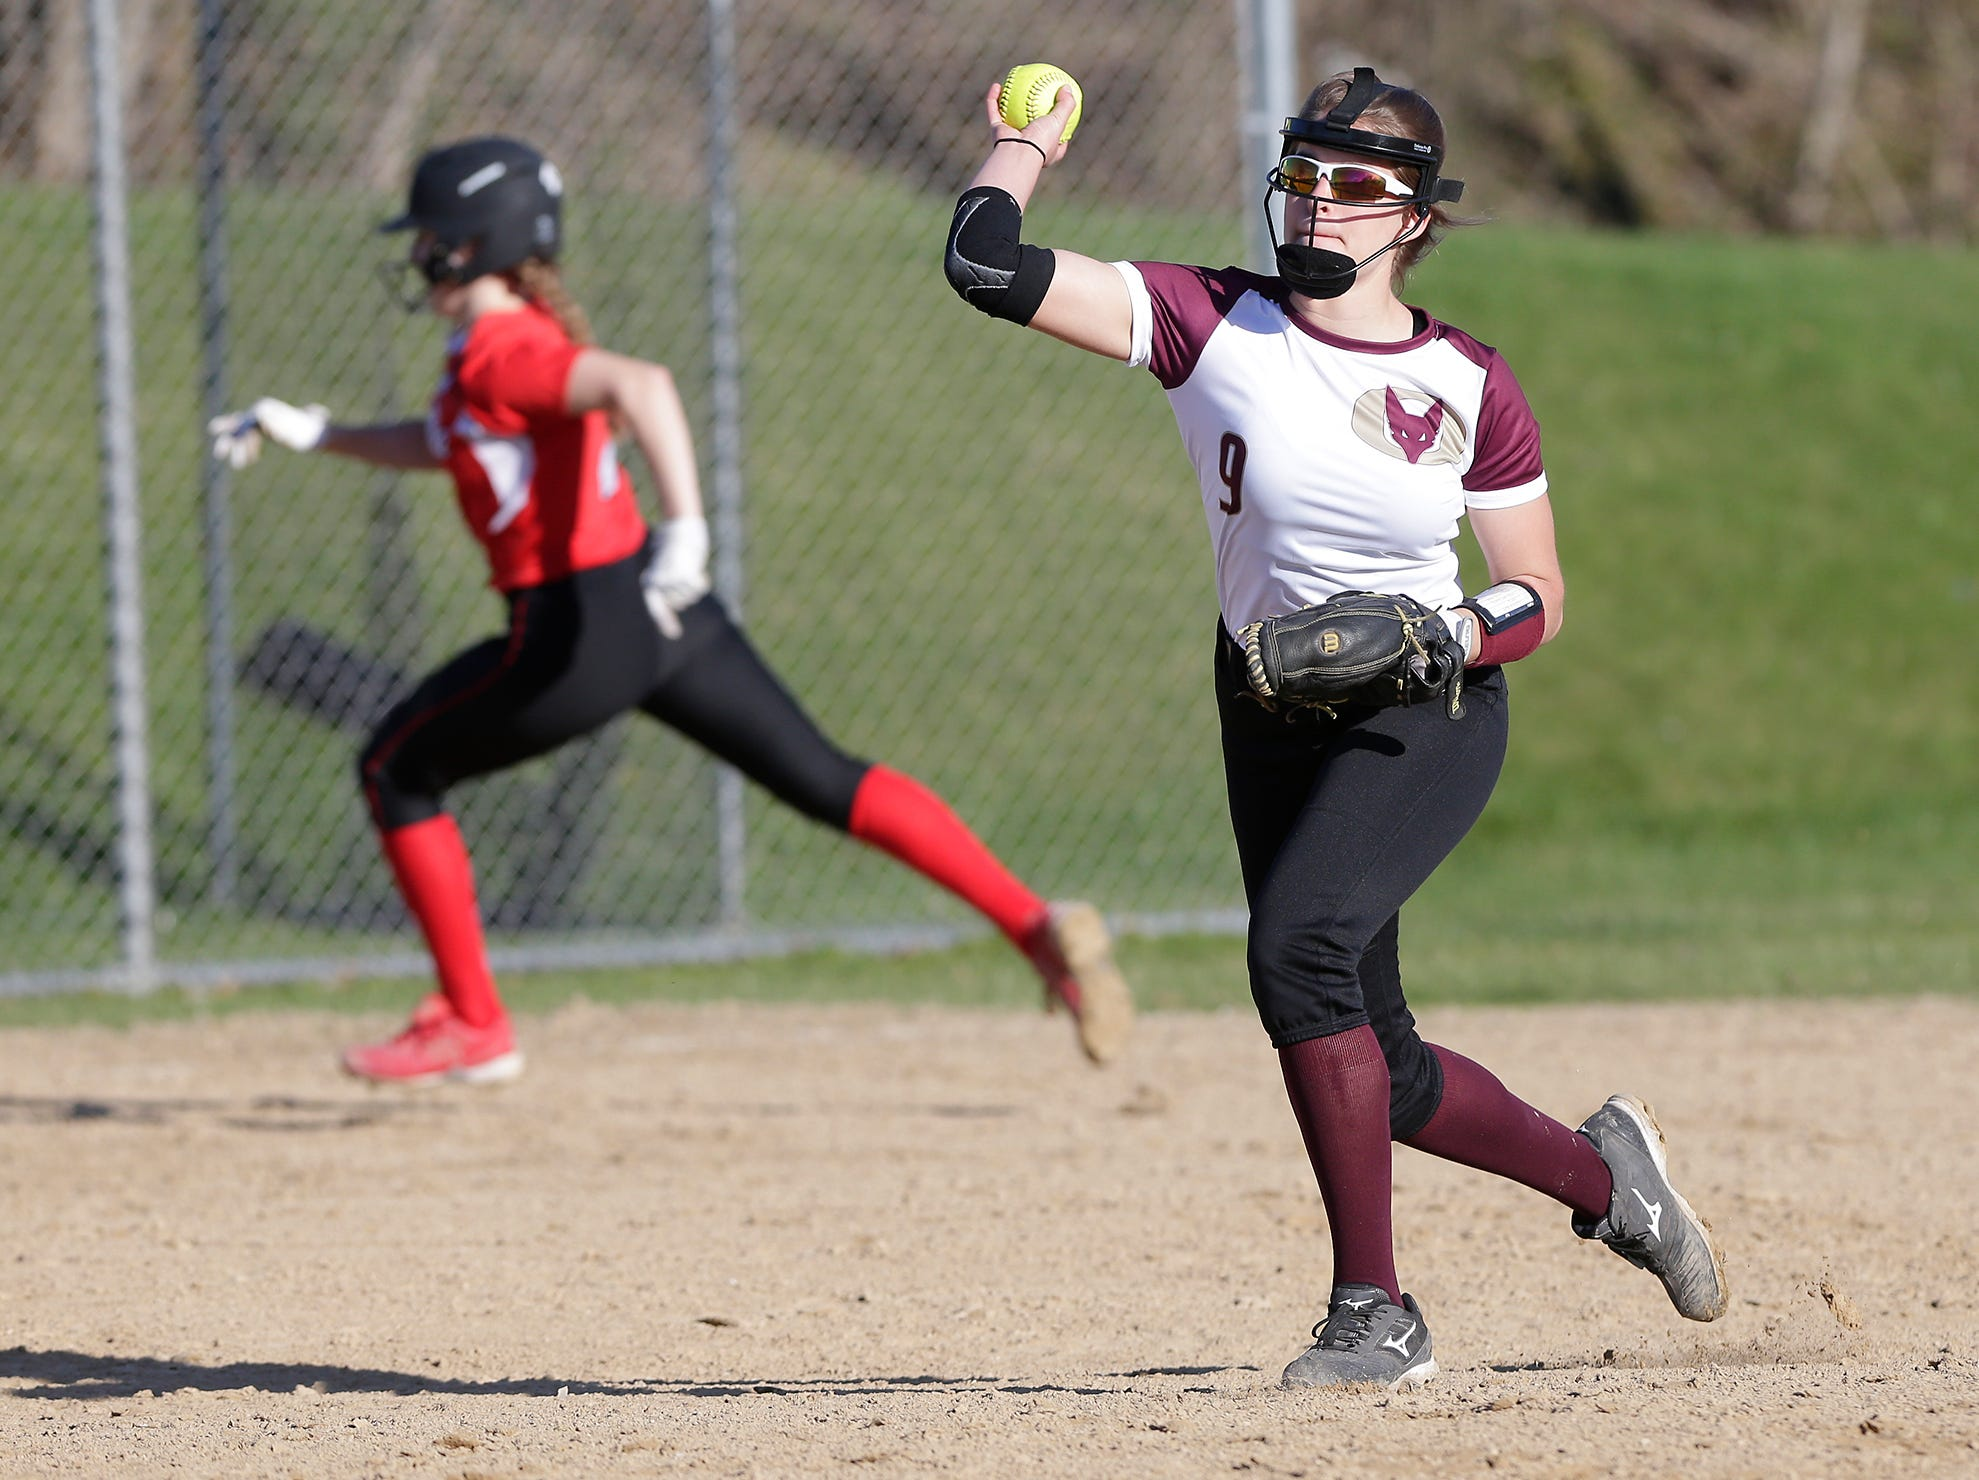 Lomira High School softball plays against Omro High School during their game Tuesday, April 23, 2019 in Lomira, Wis. Doug Raflik/USA TODAY NETWORK-Wisconsin